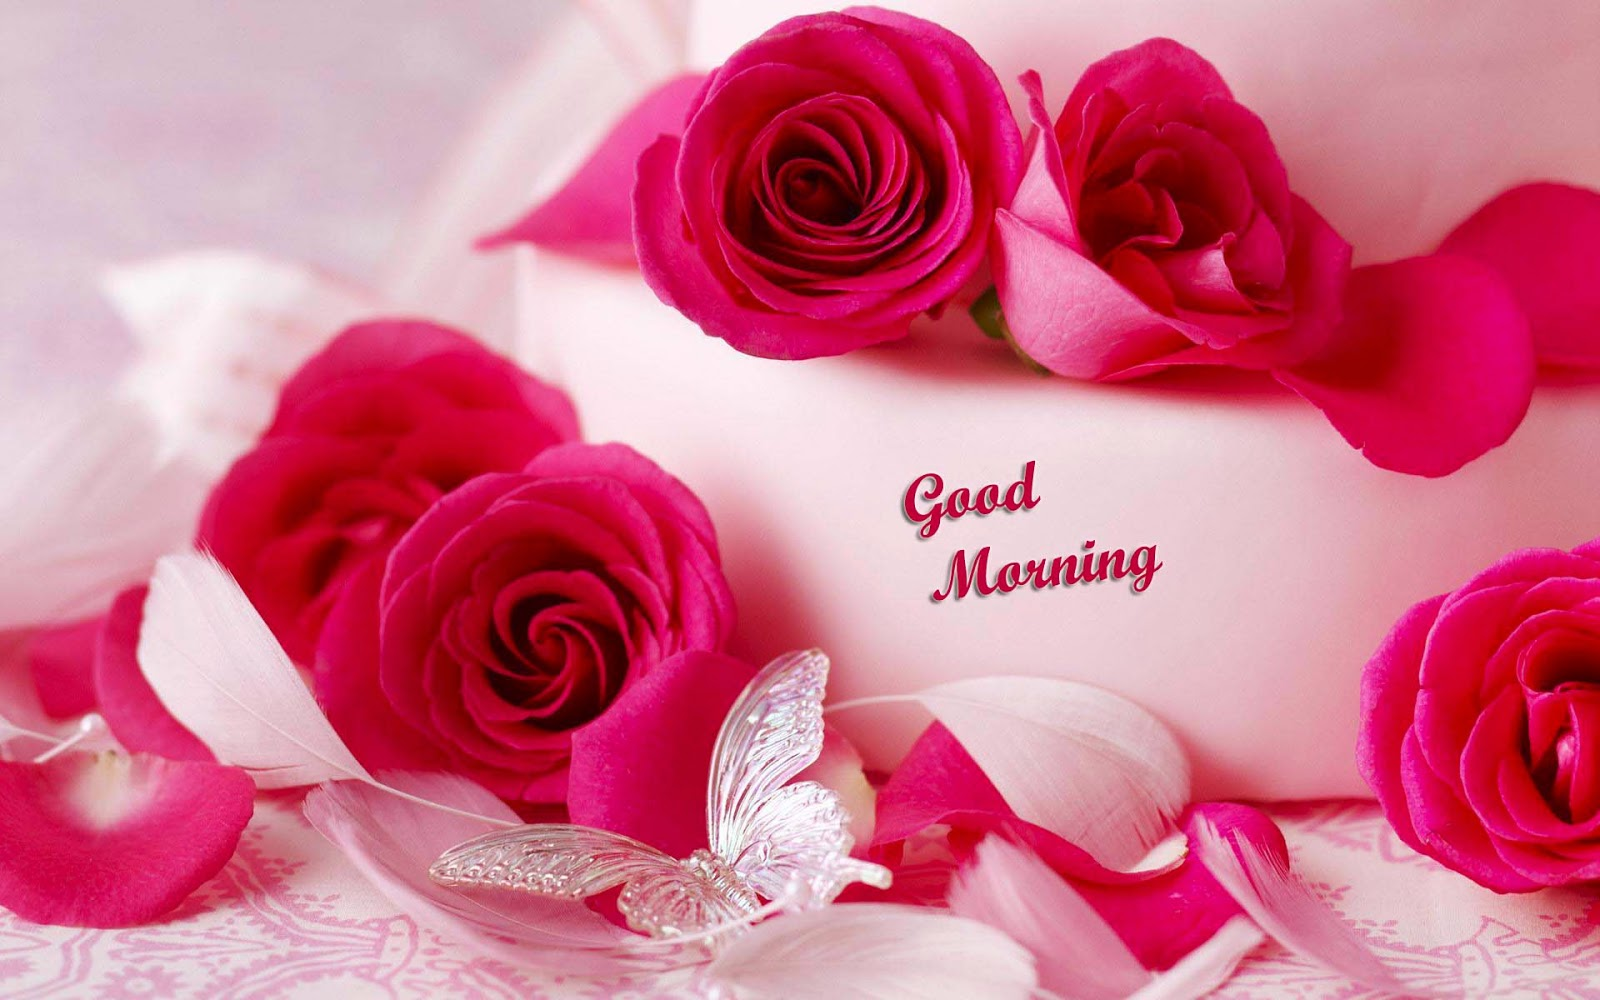 Romantic Good Morning Wallpaper Wallpapersafari